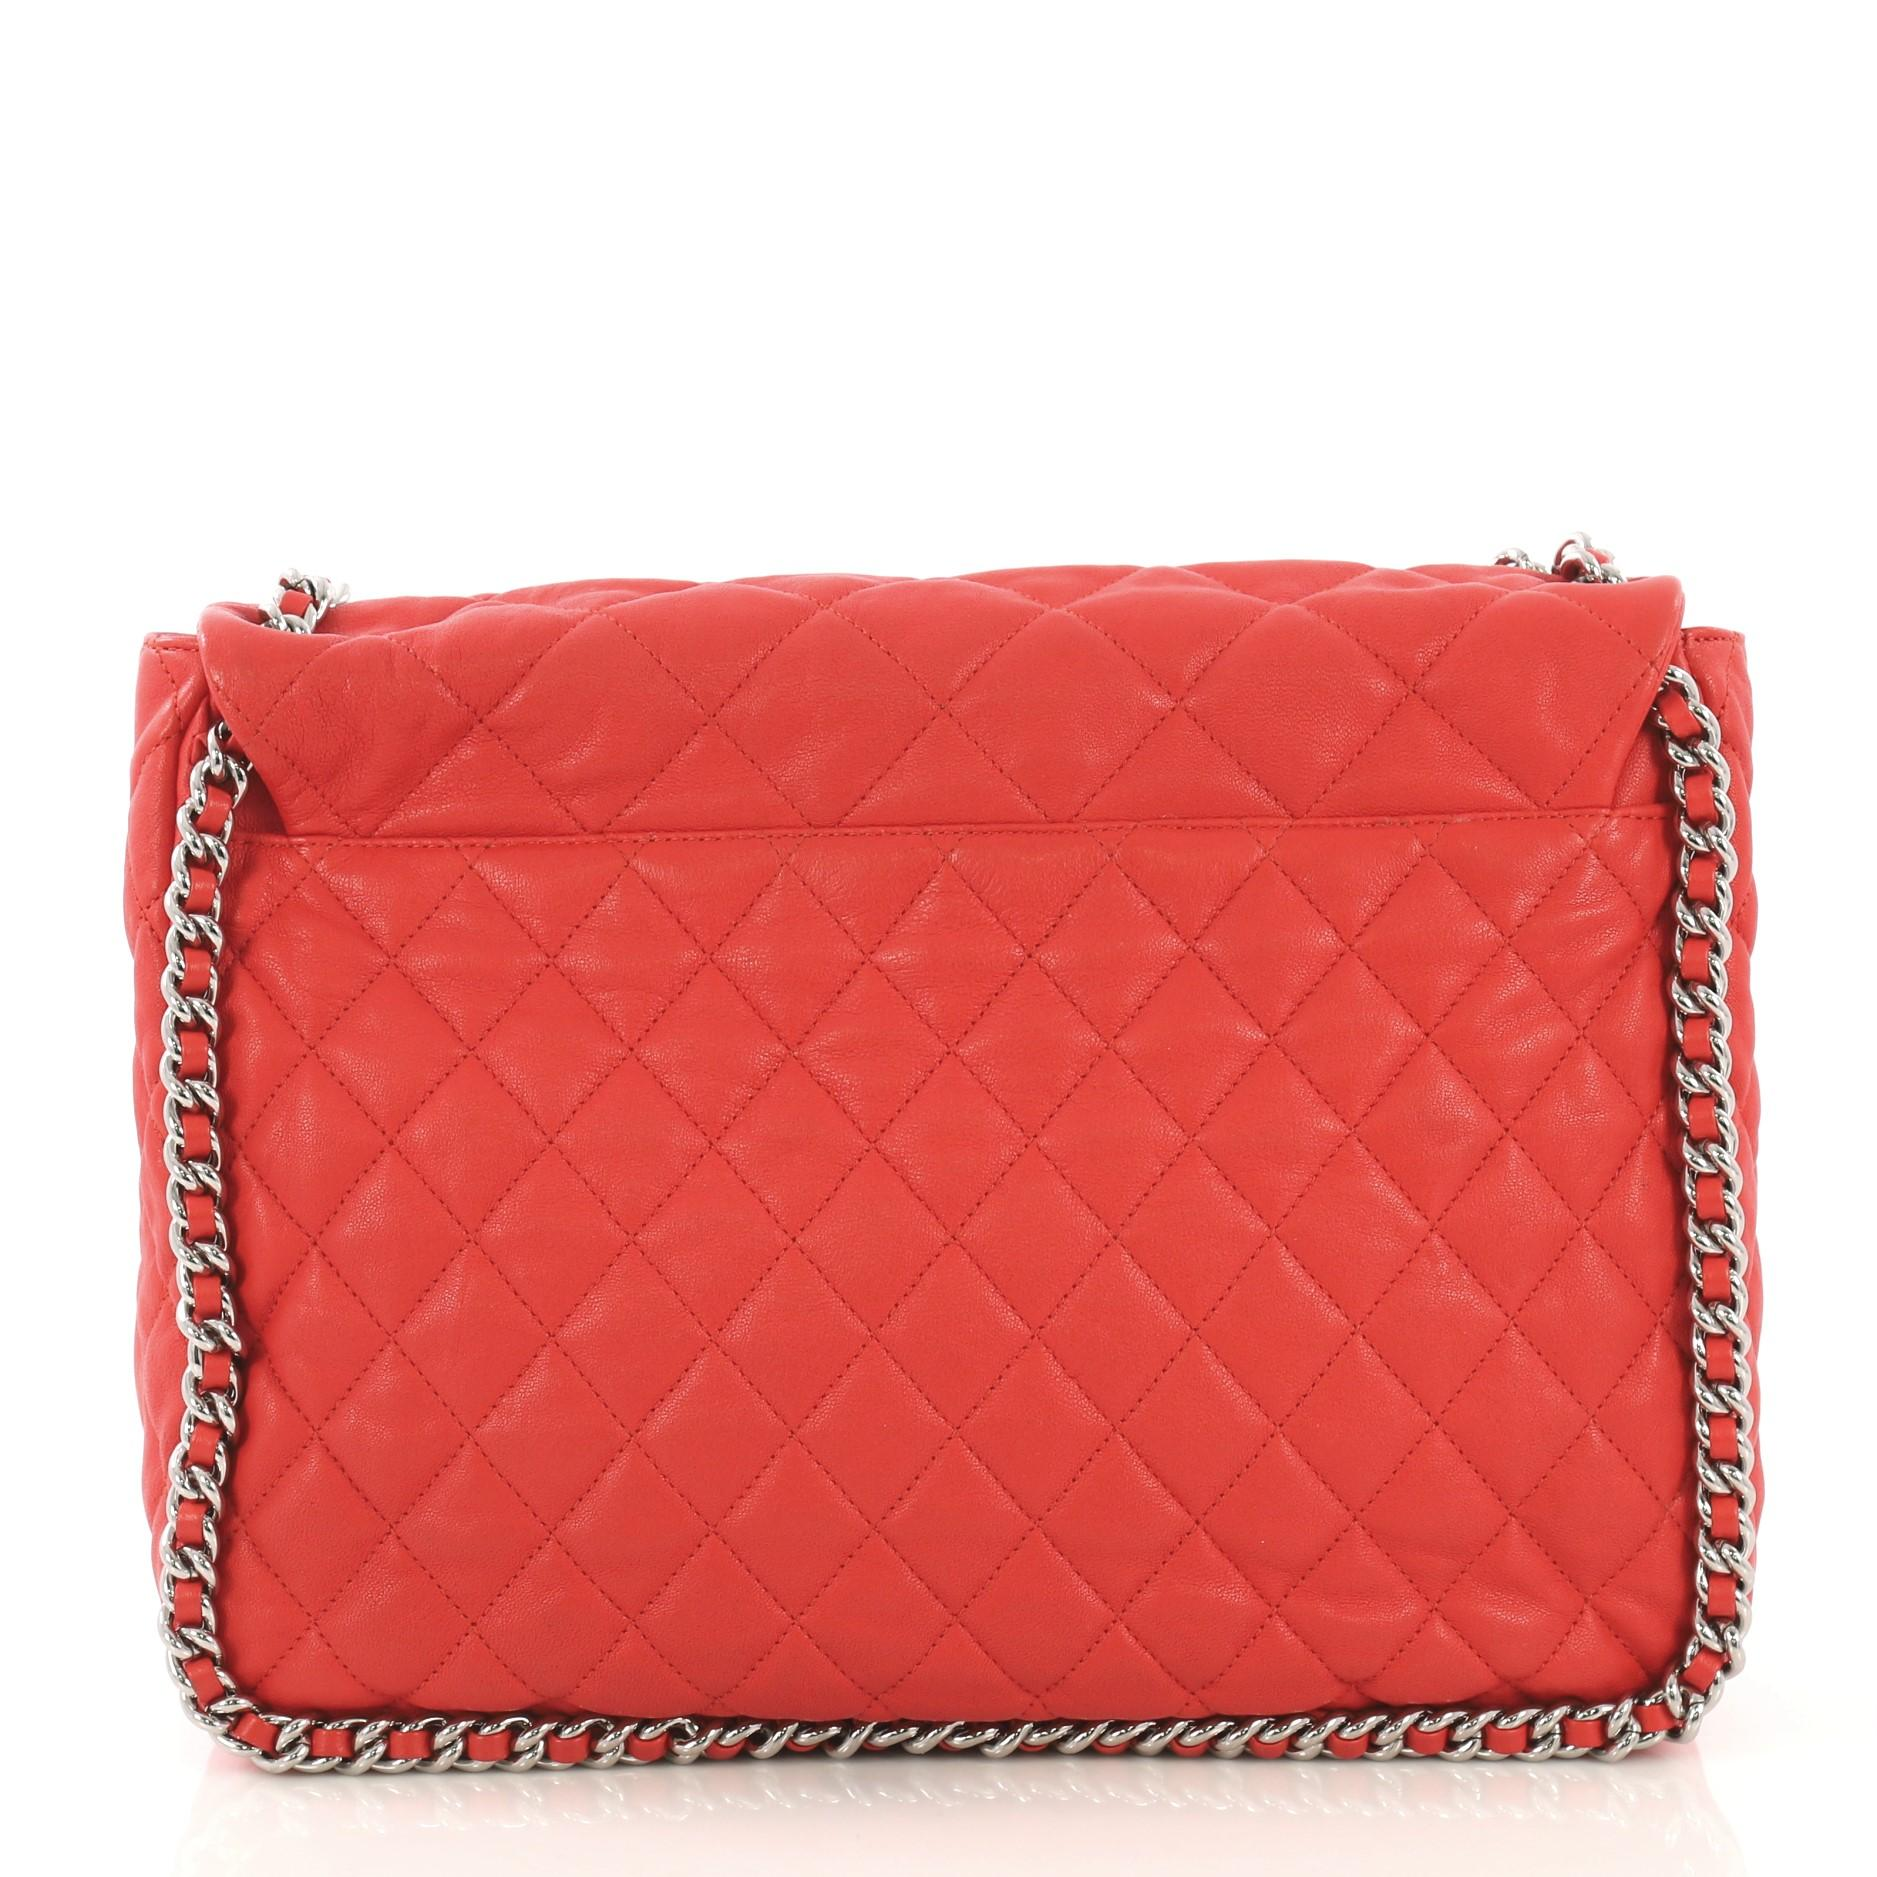 1e923c10dc37 Chanel Chain Around Flap Bag Quilted Leather Maxi For Sale at 1stdibs